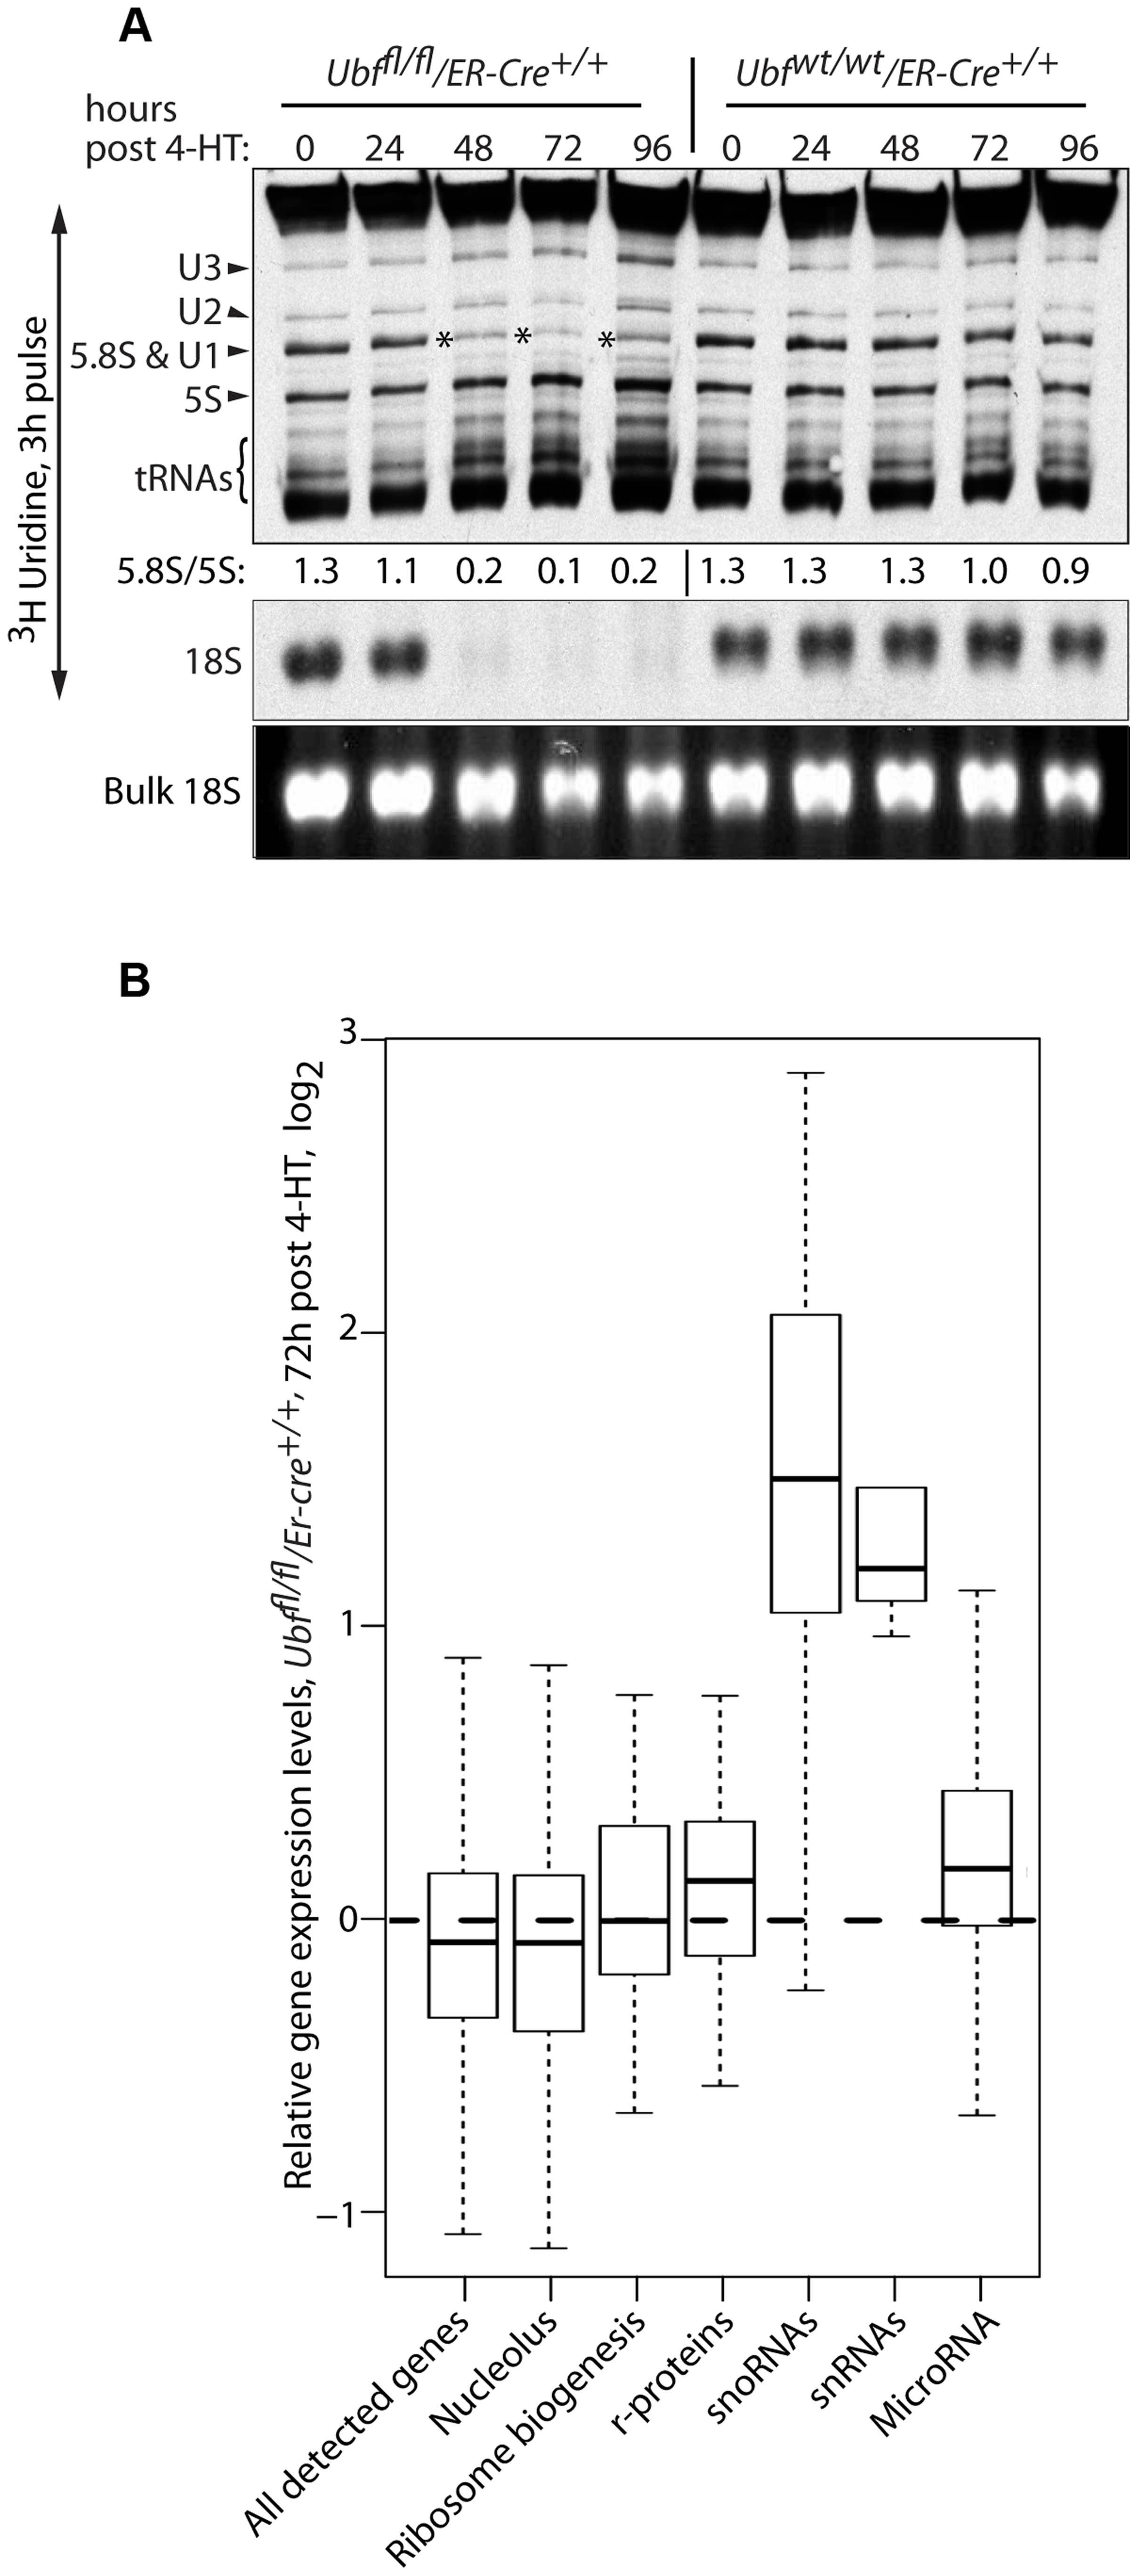 UBF elimination has only minor effects on global gene expression.